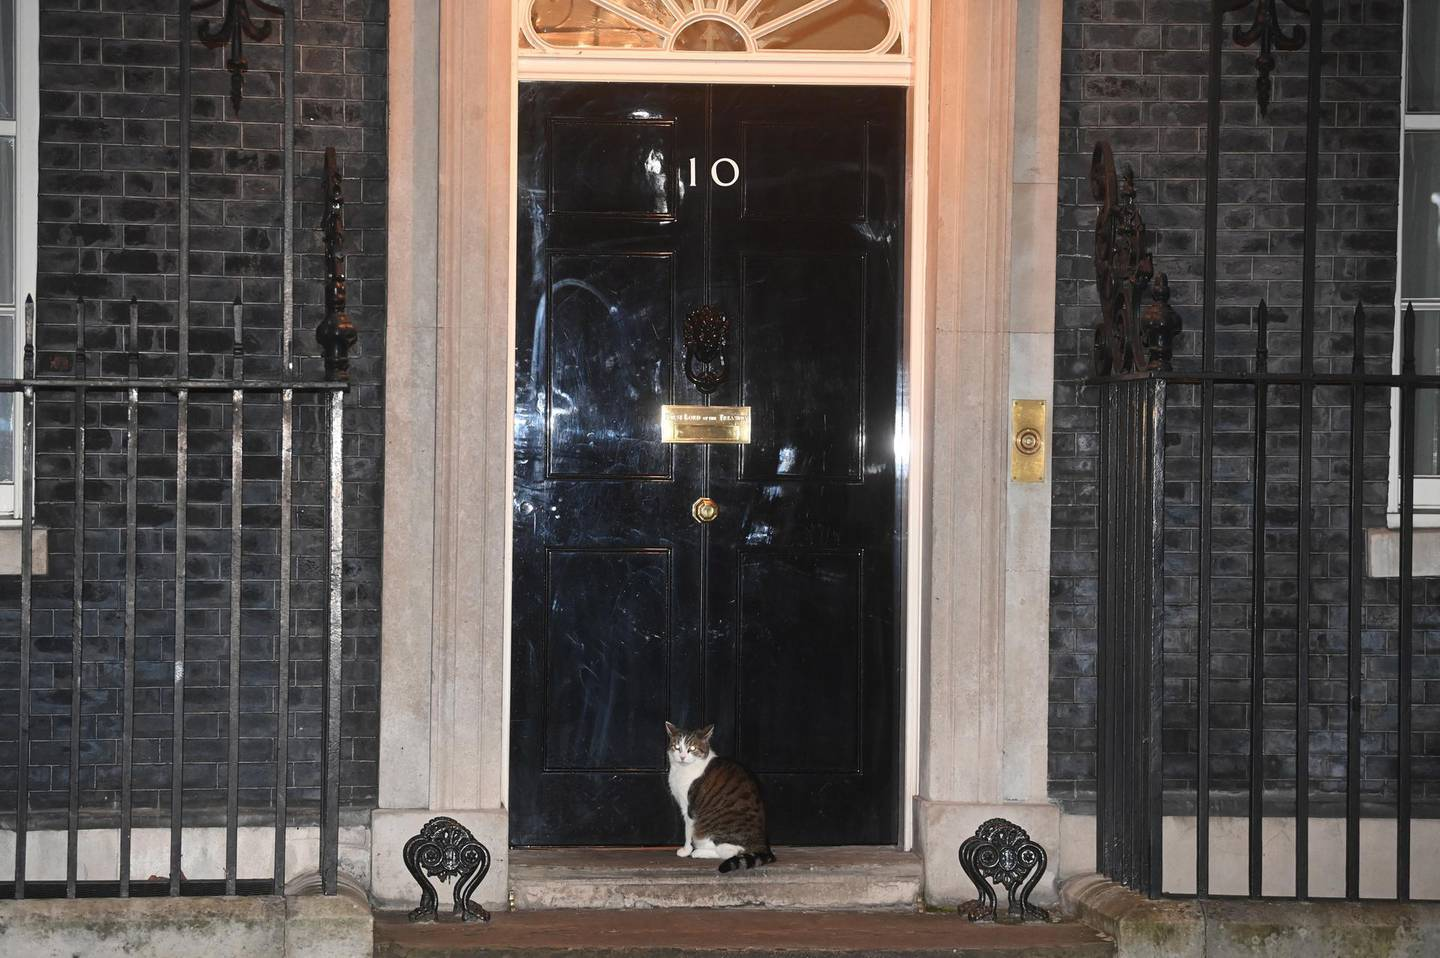 epa08925309 Apart from Larry the Cat, the door to 10 Downing Street, the official residence of the British Prime Minster, stands empty during the Clap for Heroes initiative in London, Britain, 07 January 2021. Clap for Carers, an initiative for members of the public to applaud National Health Service (NHS) workers, has returned under a new name of Clap for Heroes. The weekly applause founded by Annemarie Plas for front-line NHS staff and other key workers ran for ten weeks during the UK's first coronavirus lockdown spring 2020. Plas later distanced herself from the new initiative.  EPA/NEIL HALL